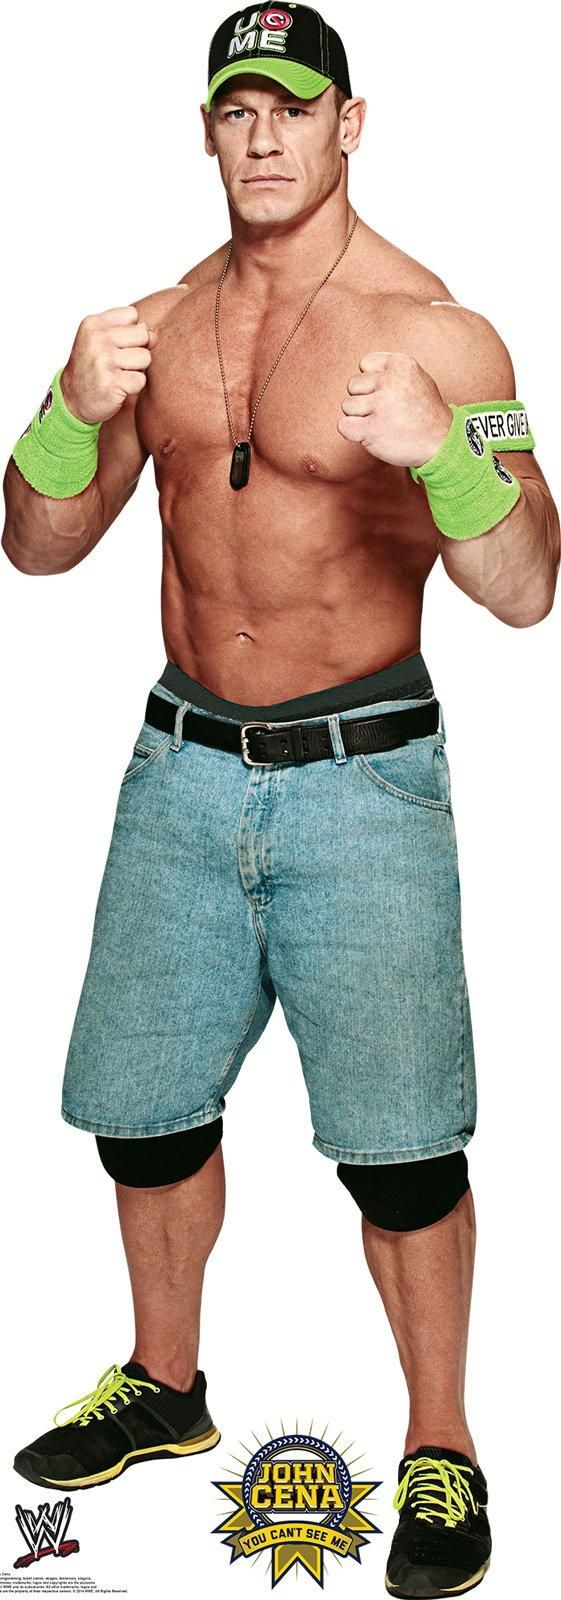 WWE Party John Cena Stand Up, 95304